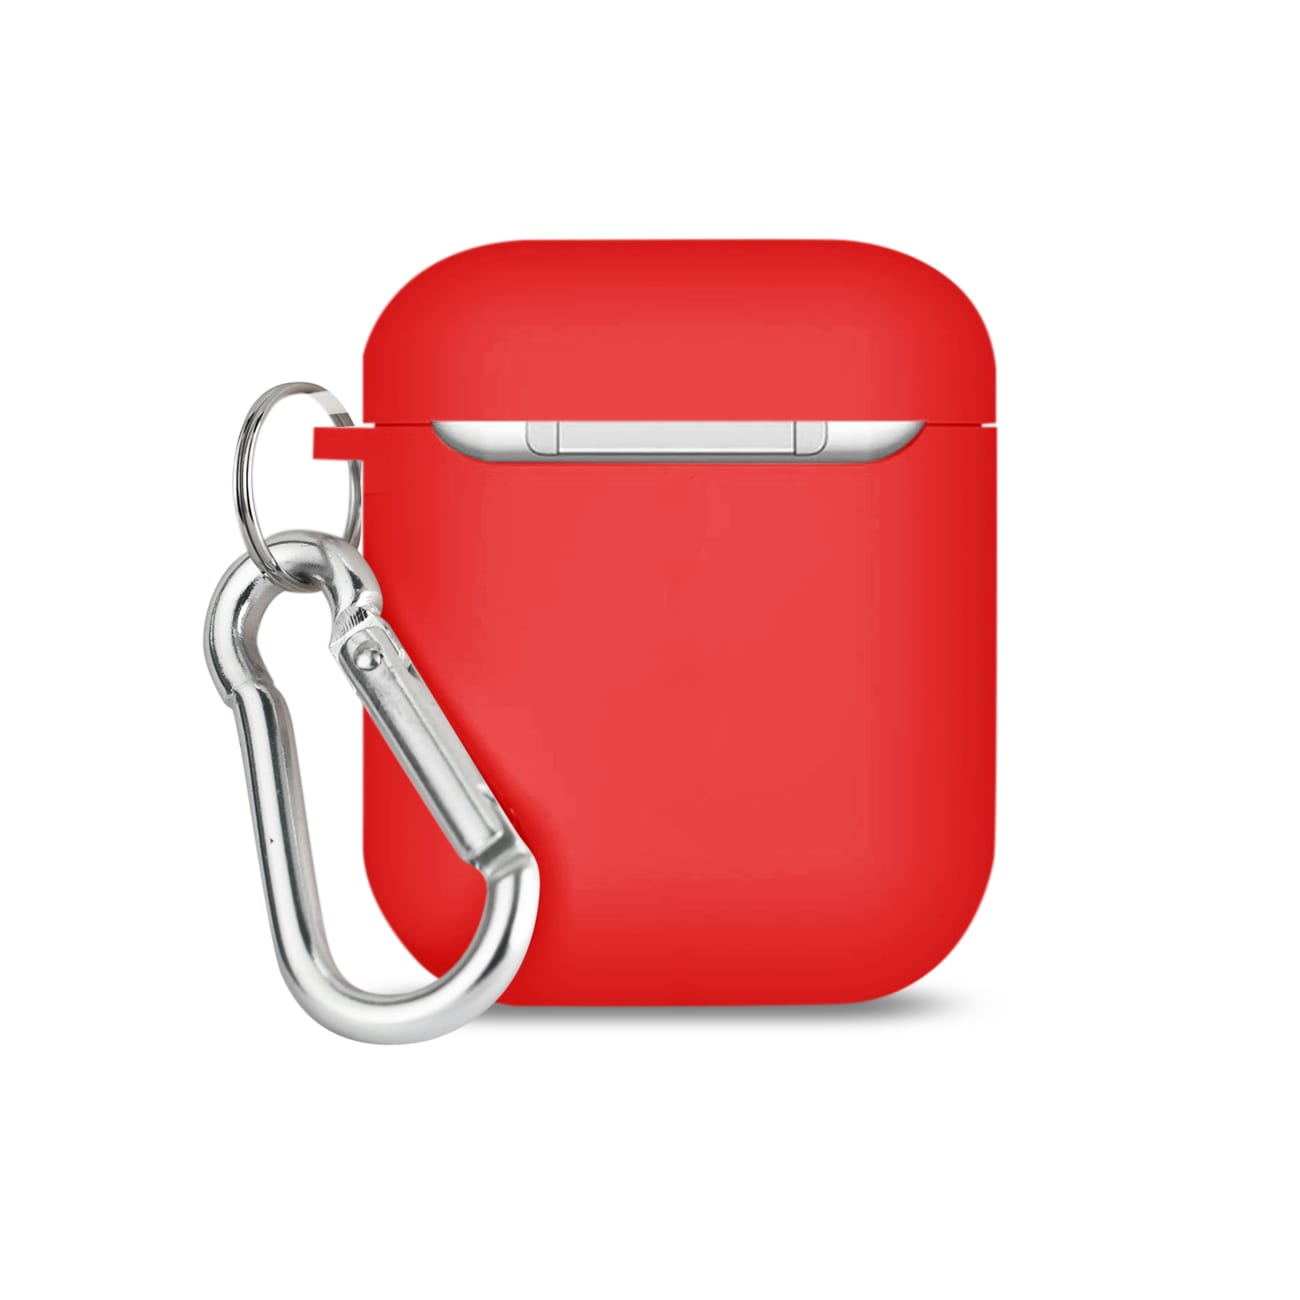 ISTIK Silicone Case for Airpods in Red